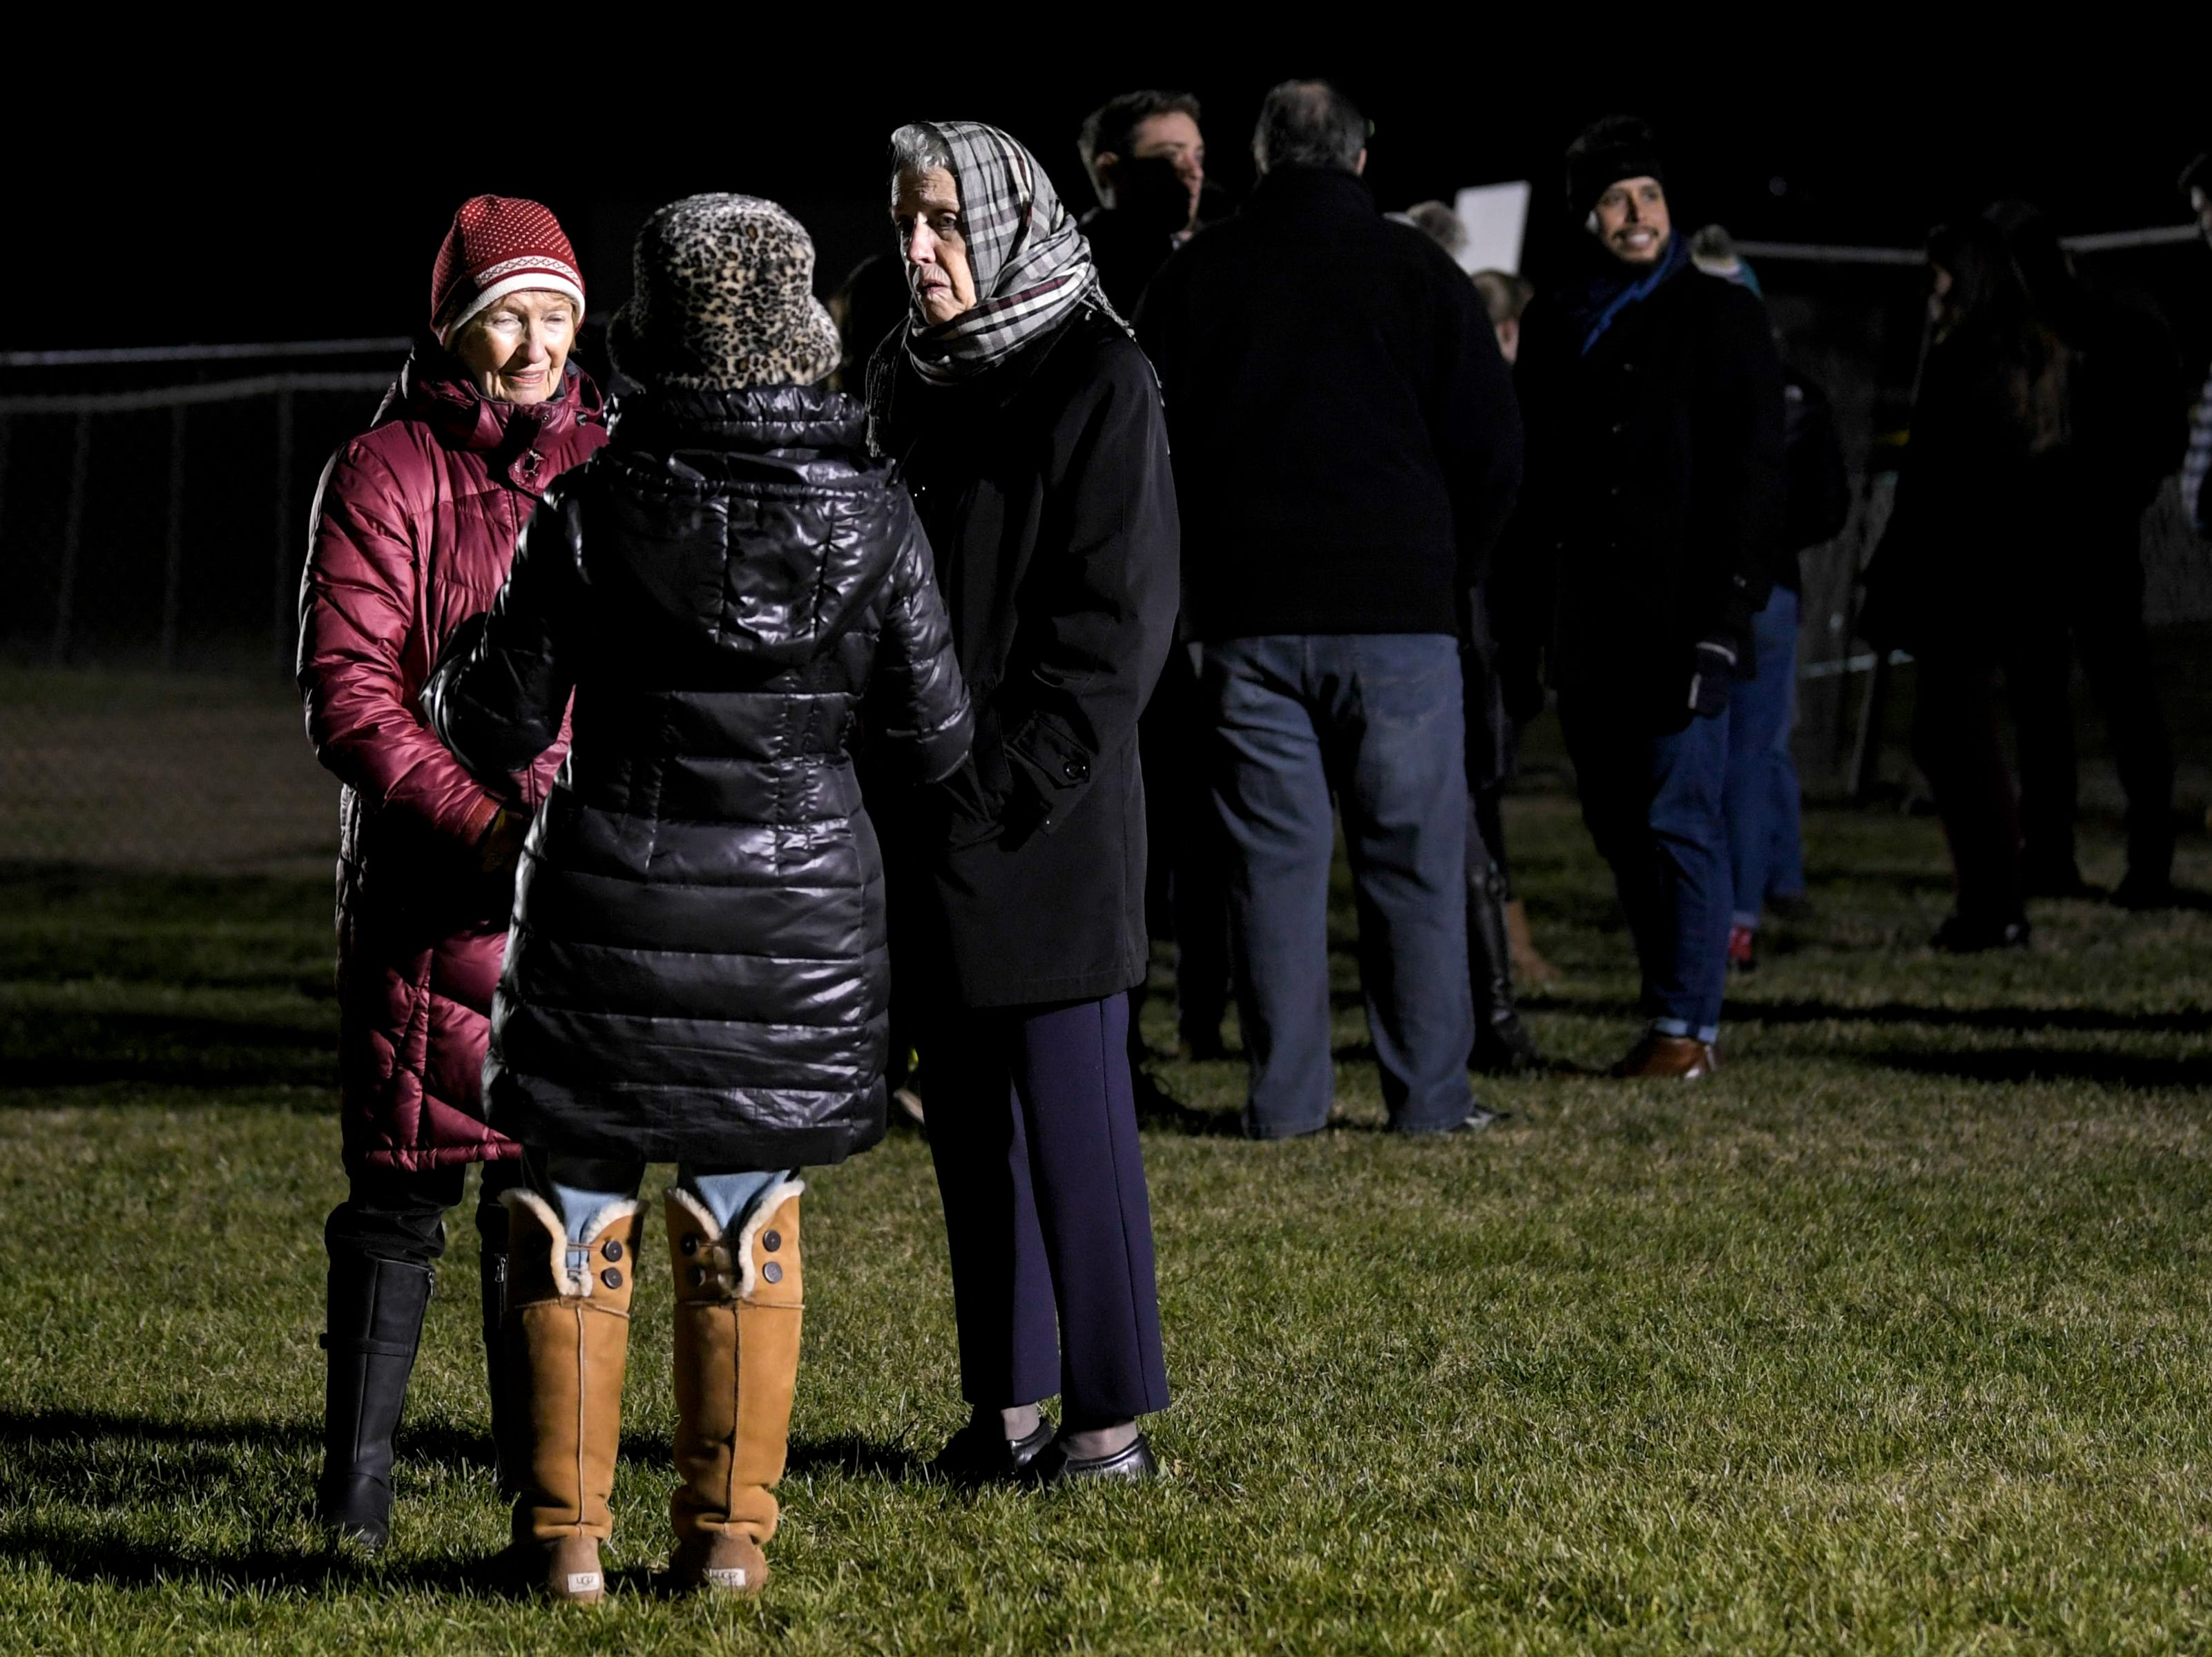 Protesters against the death penalty begin to arrive in a field outside Riverbend Maximum Security Institution before the execution of Tennessee death row inmate David Earl Miller on Thursday Dec. 6, 2018.